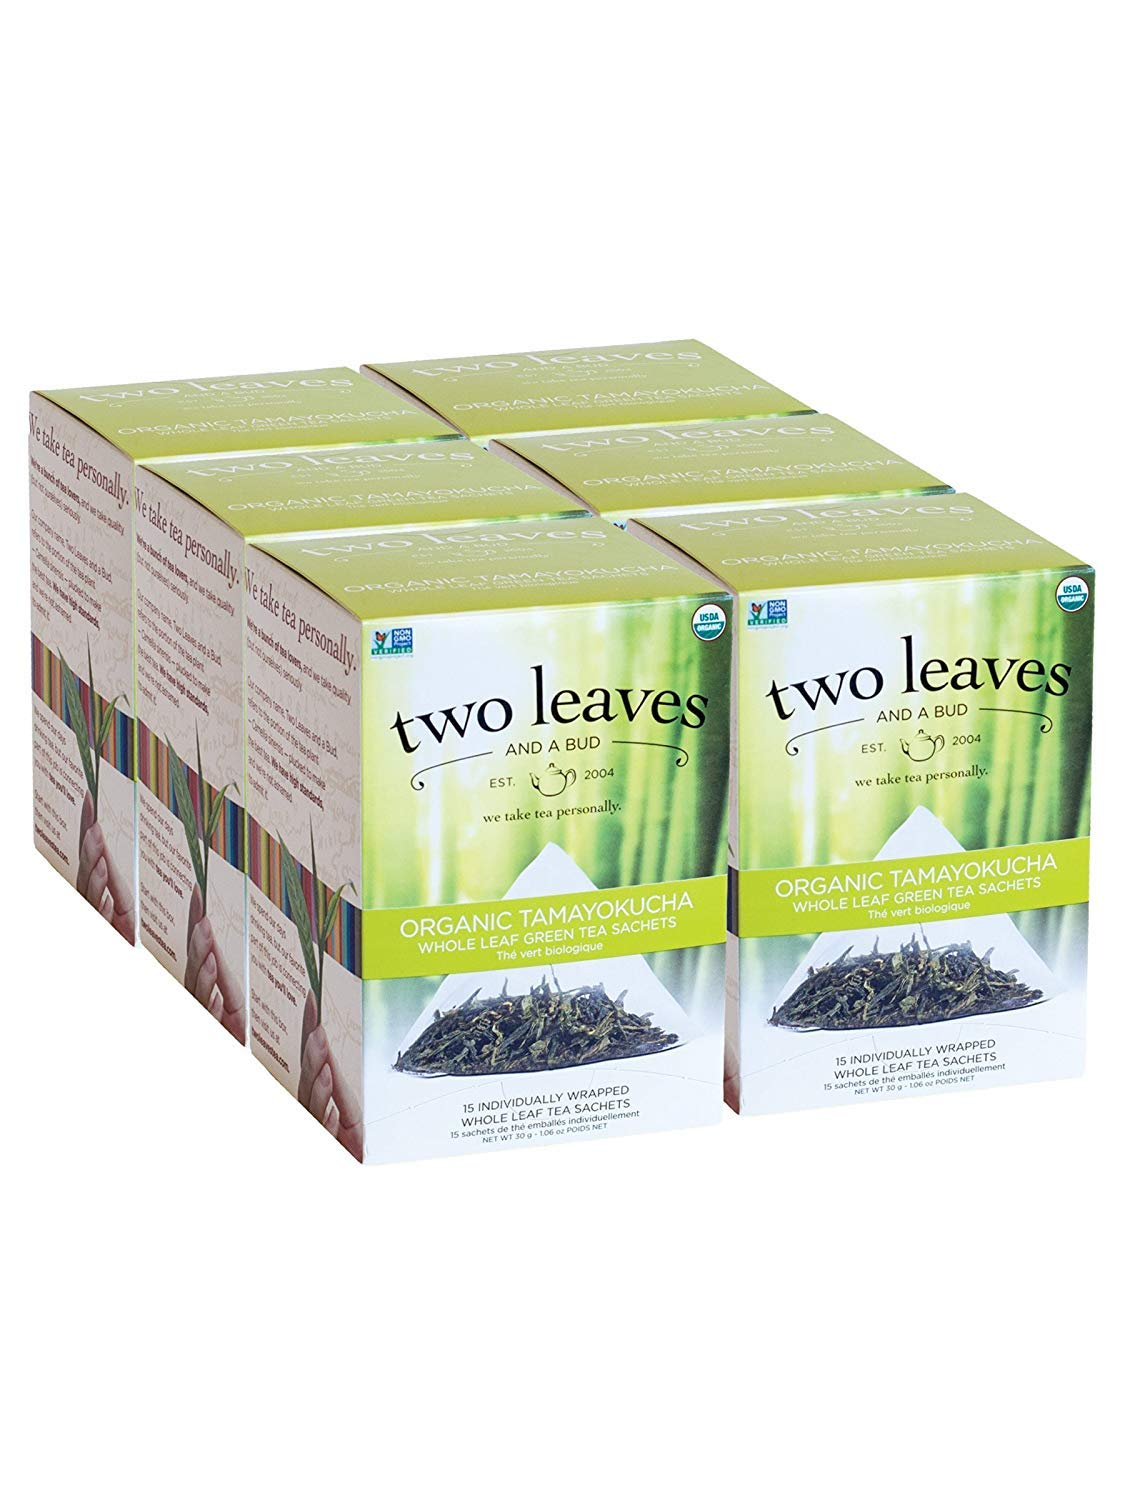 Two Leaves and a Bud Organic Tamayokucha Green Tea Bags, Whole Leaf Green Tea in Sachets, 15 Count (Pack of 6)